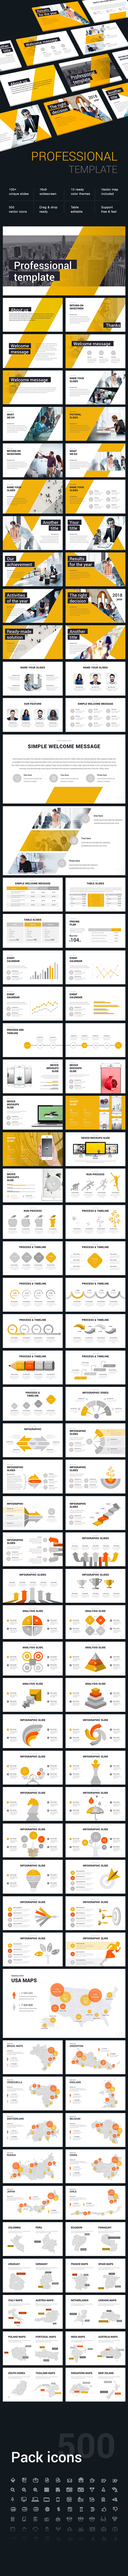 PRO Powerpoint Template - Pitch Deck PowerPoint Templates